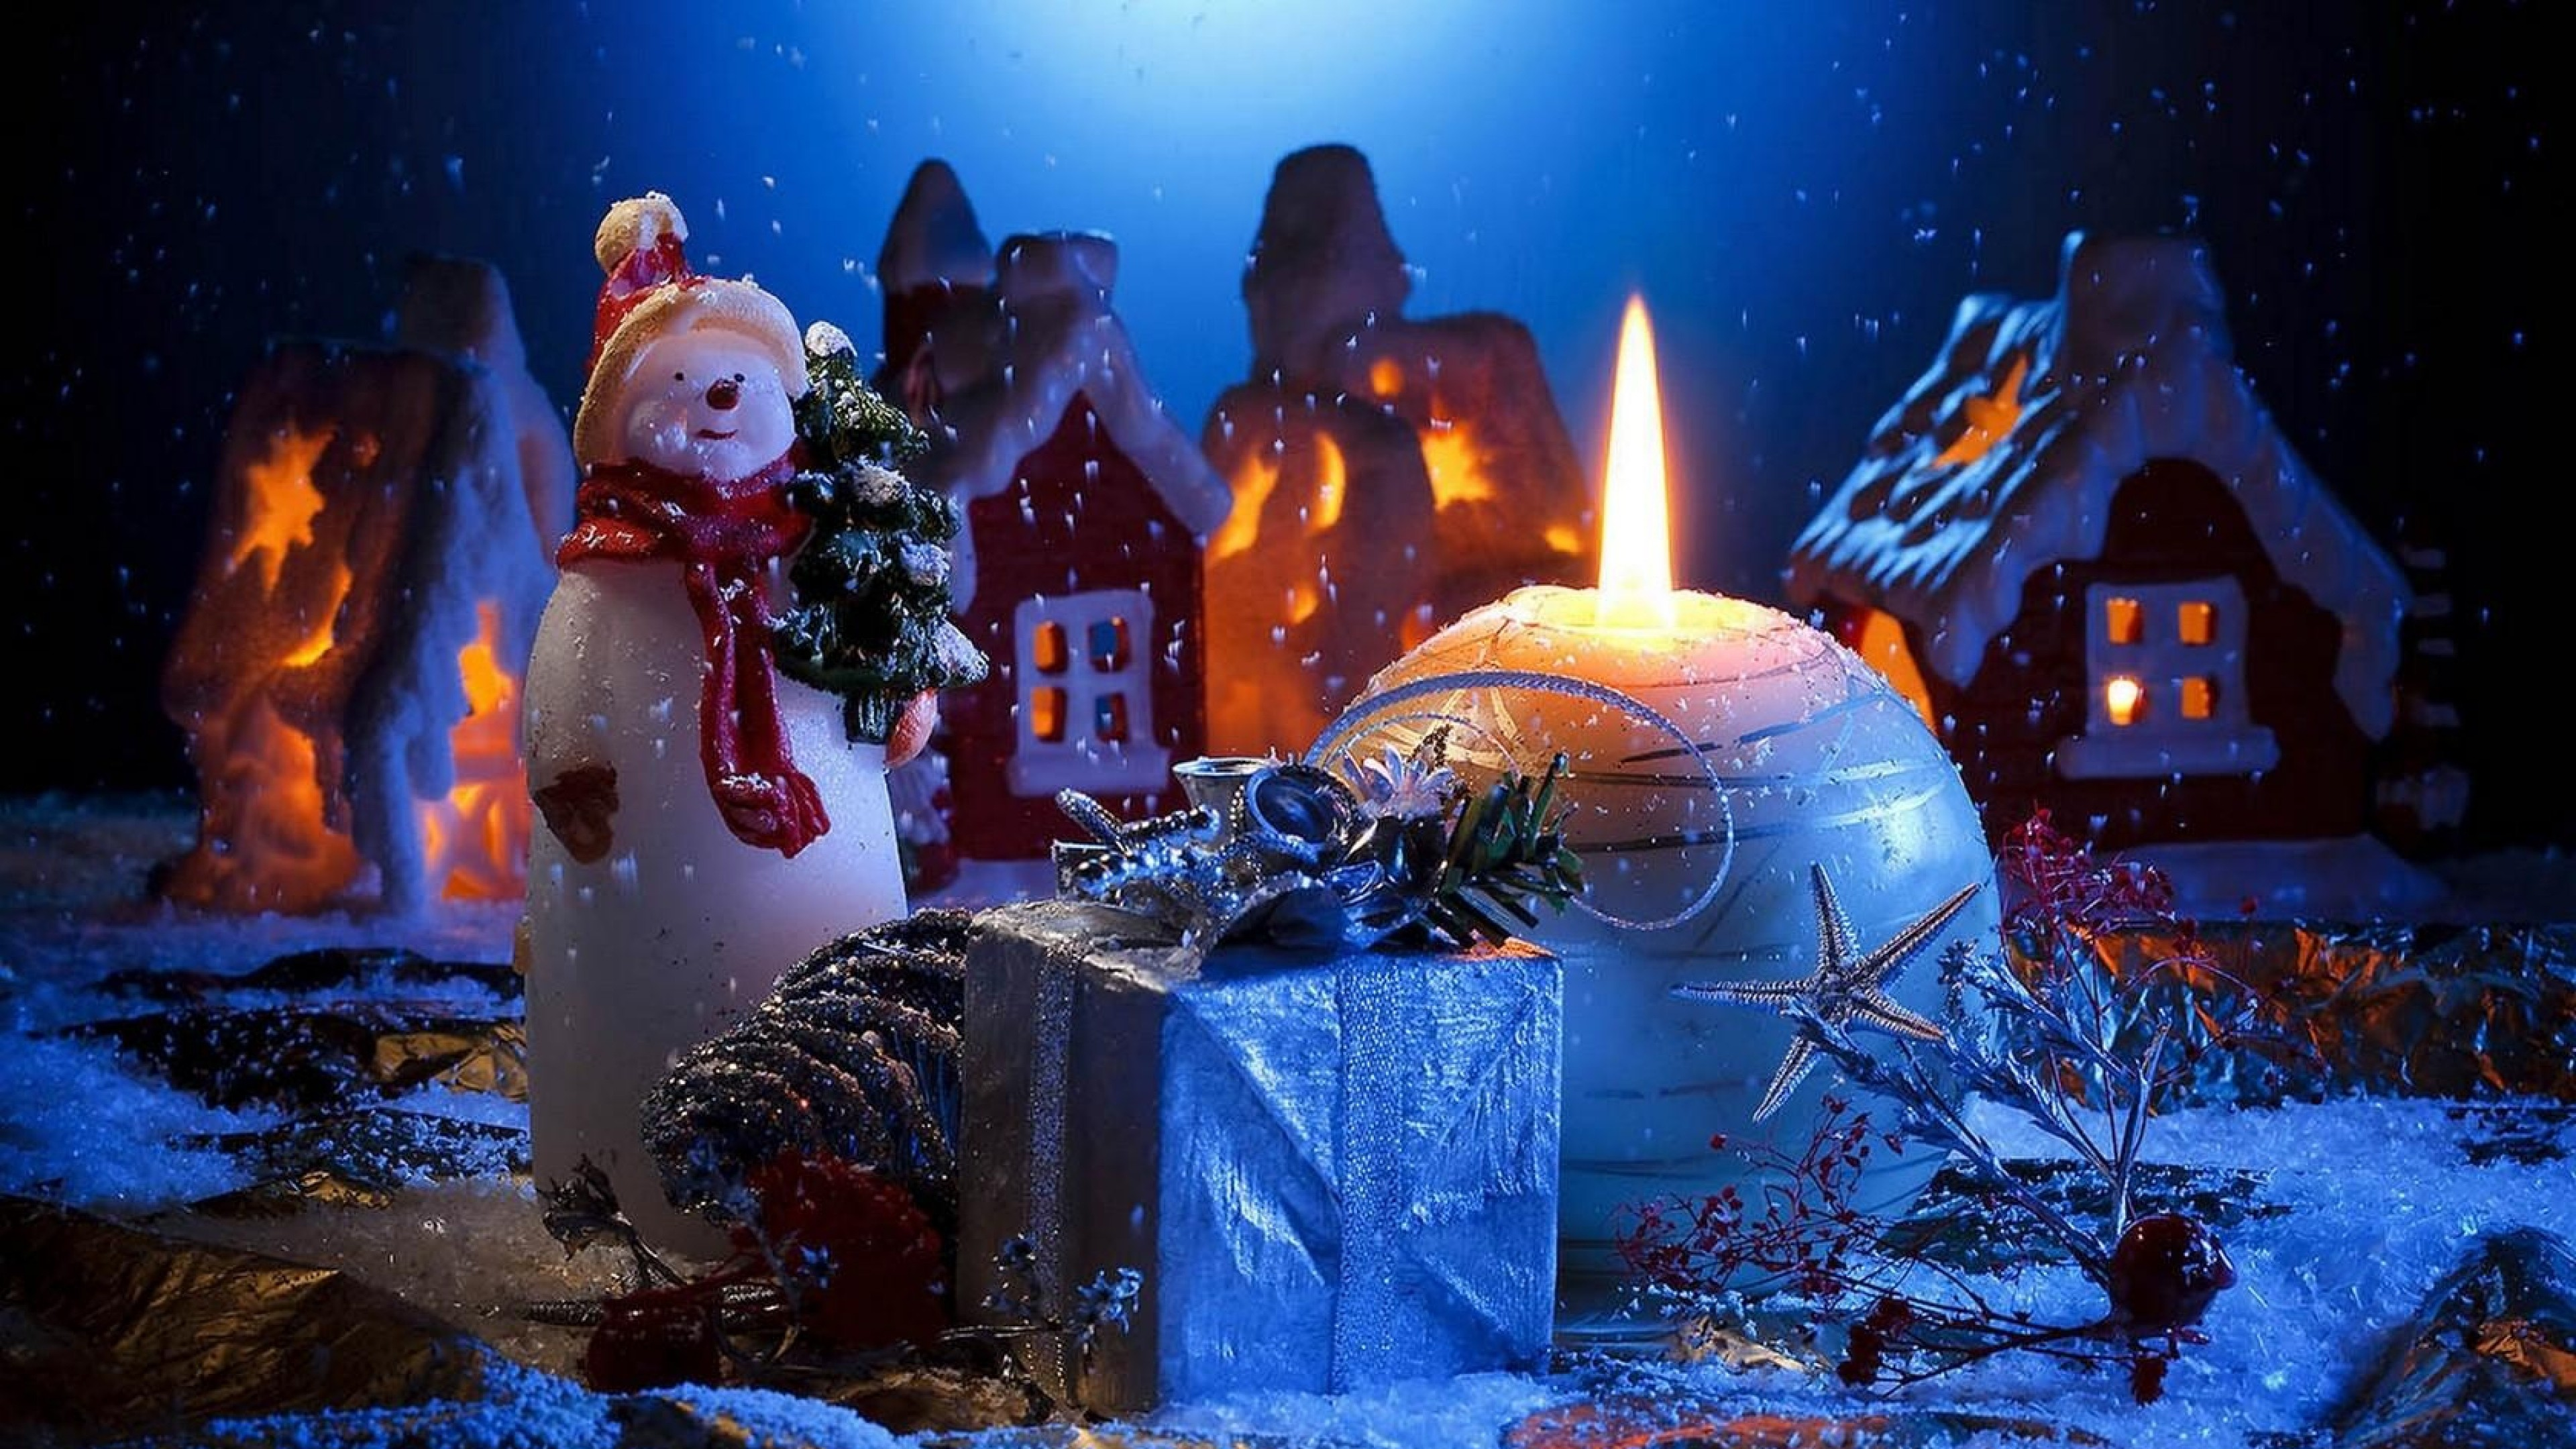 Download Wallpaper Candle, Snowman, Gift, Home, Holiday .